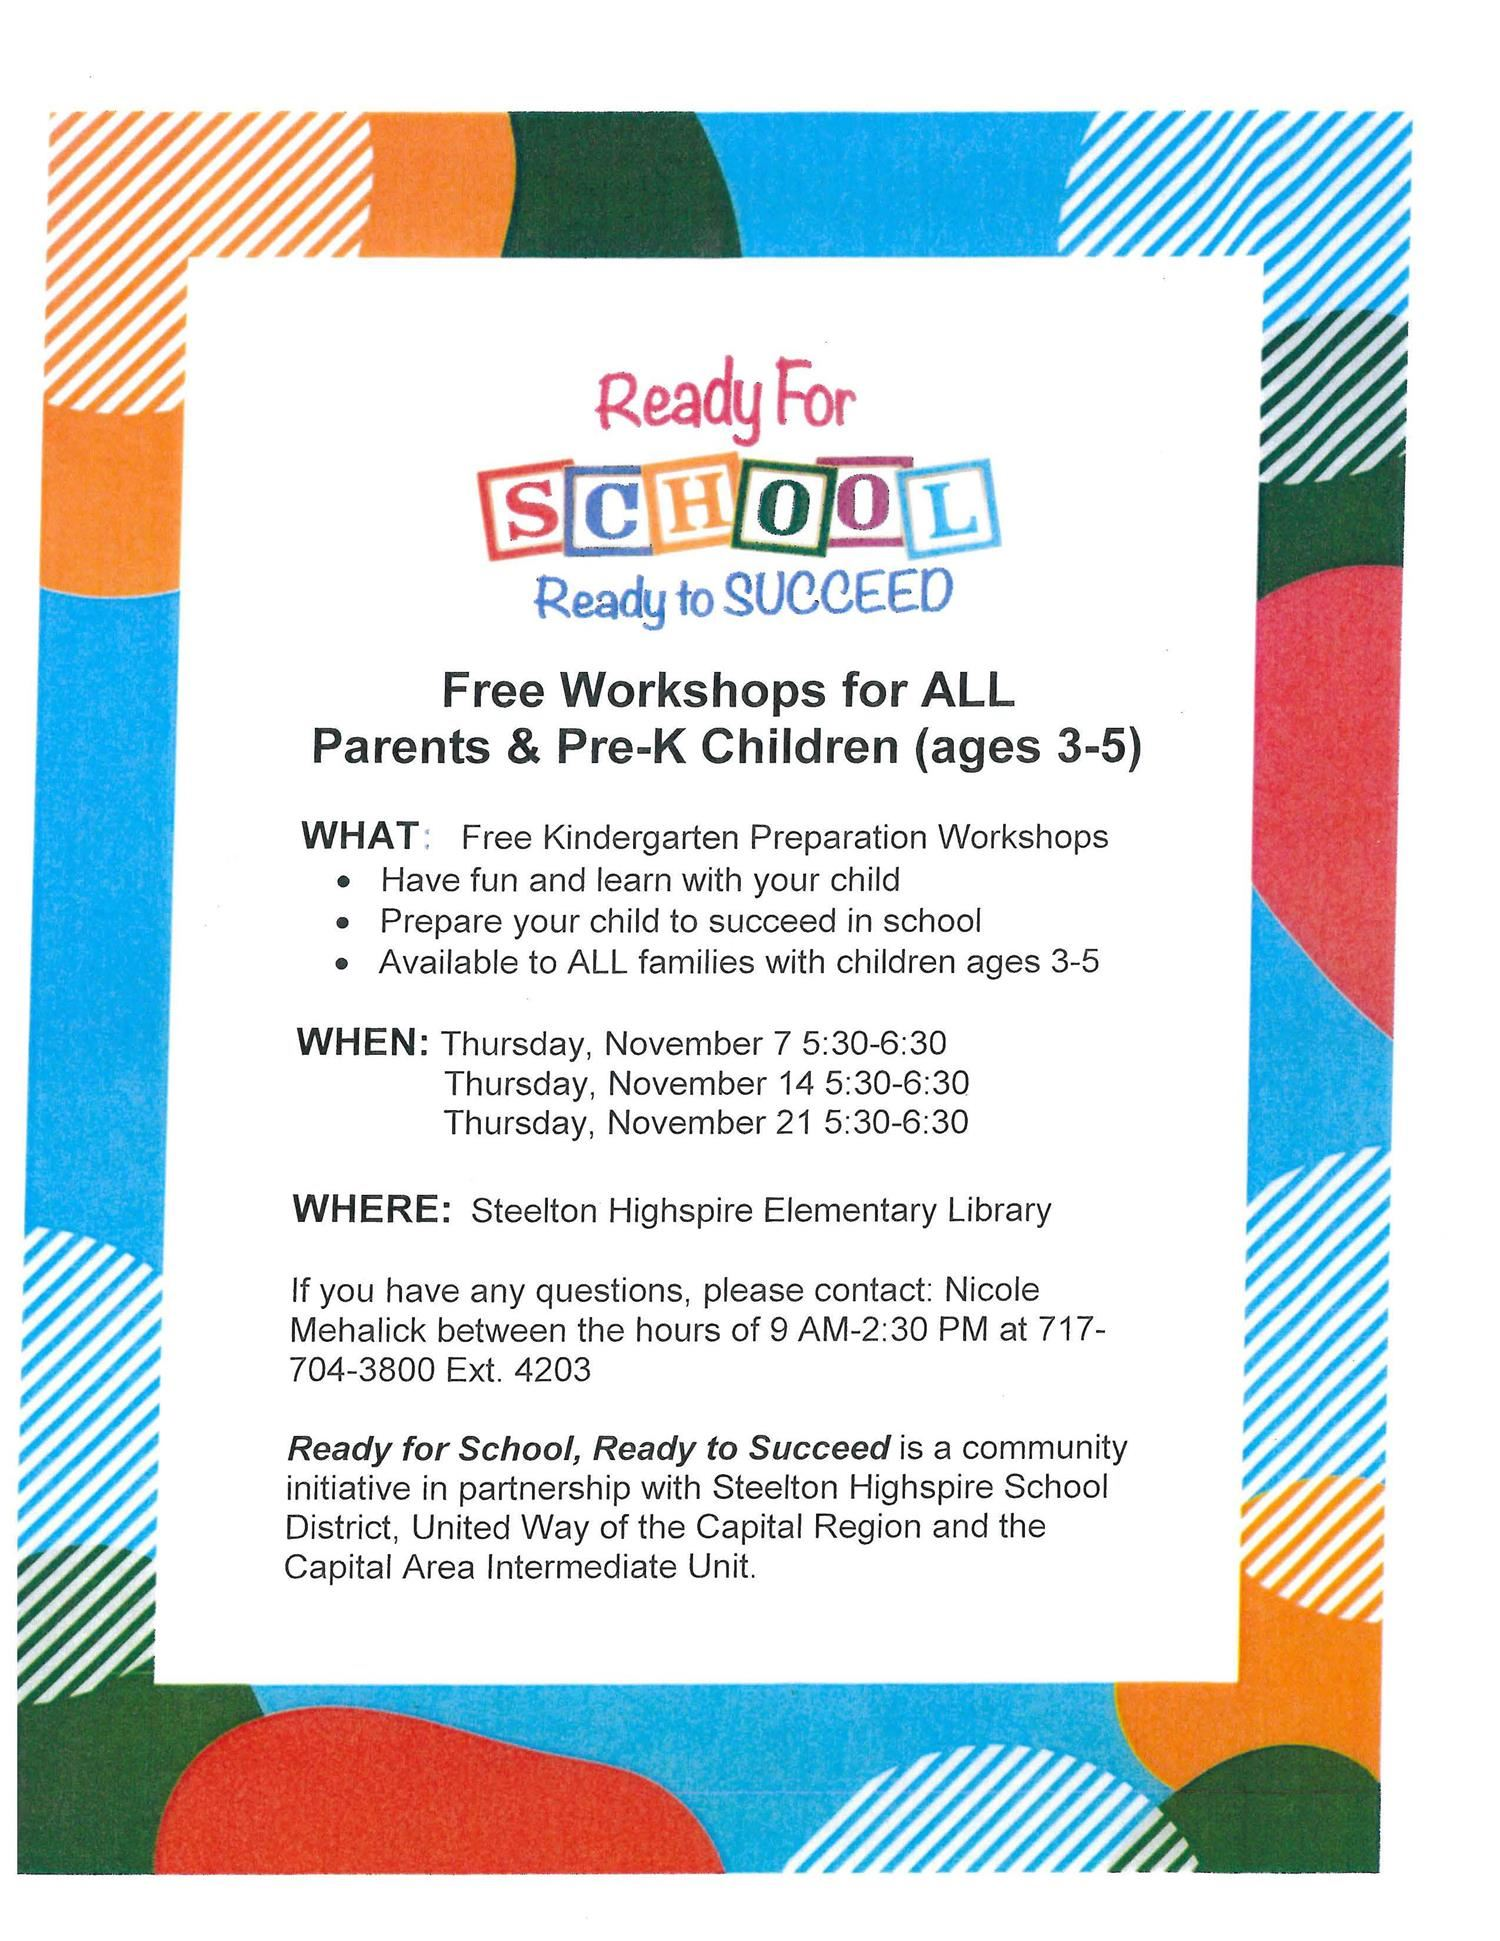 Ready for School Ready to Succeed Workshop Flyer